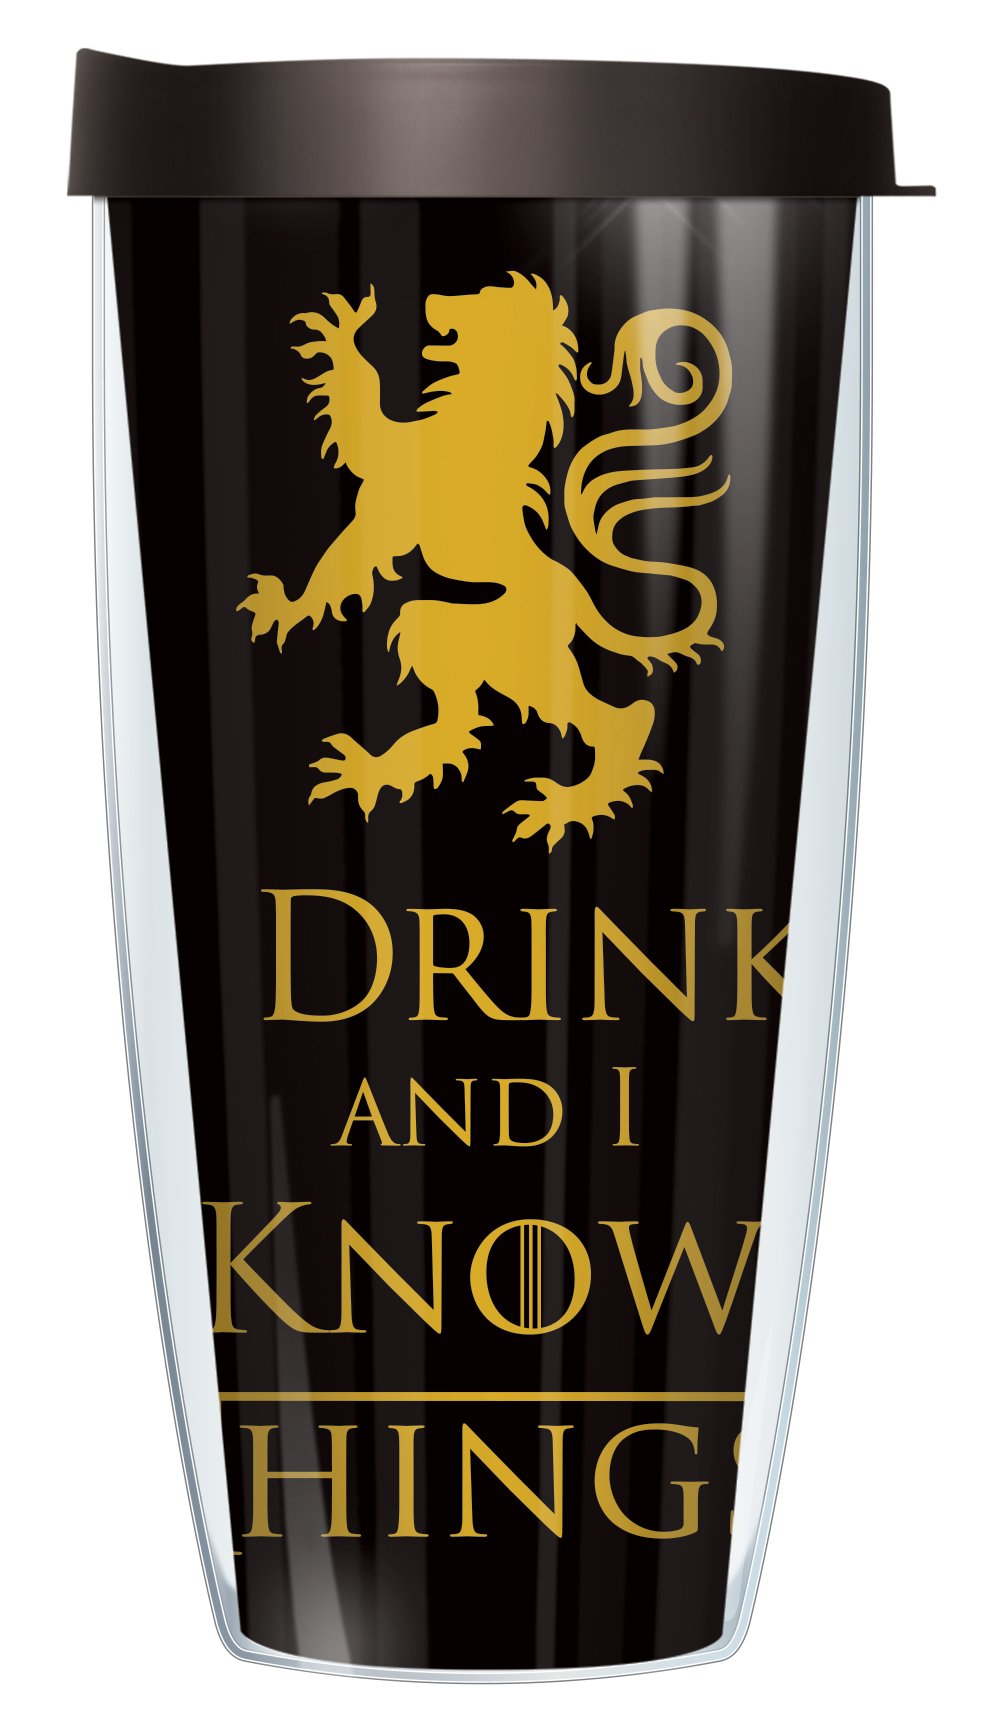 I Drink and I Know Things 22oz Mug Tumbler Cup with Black Lid